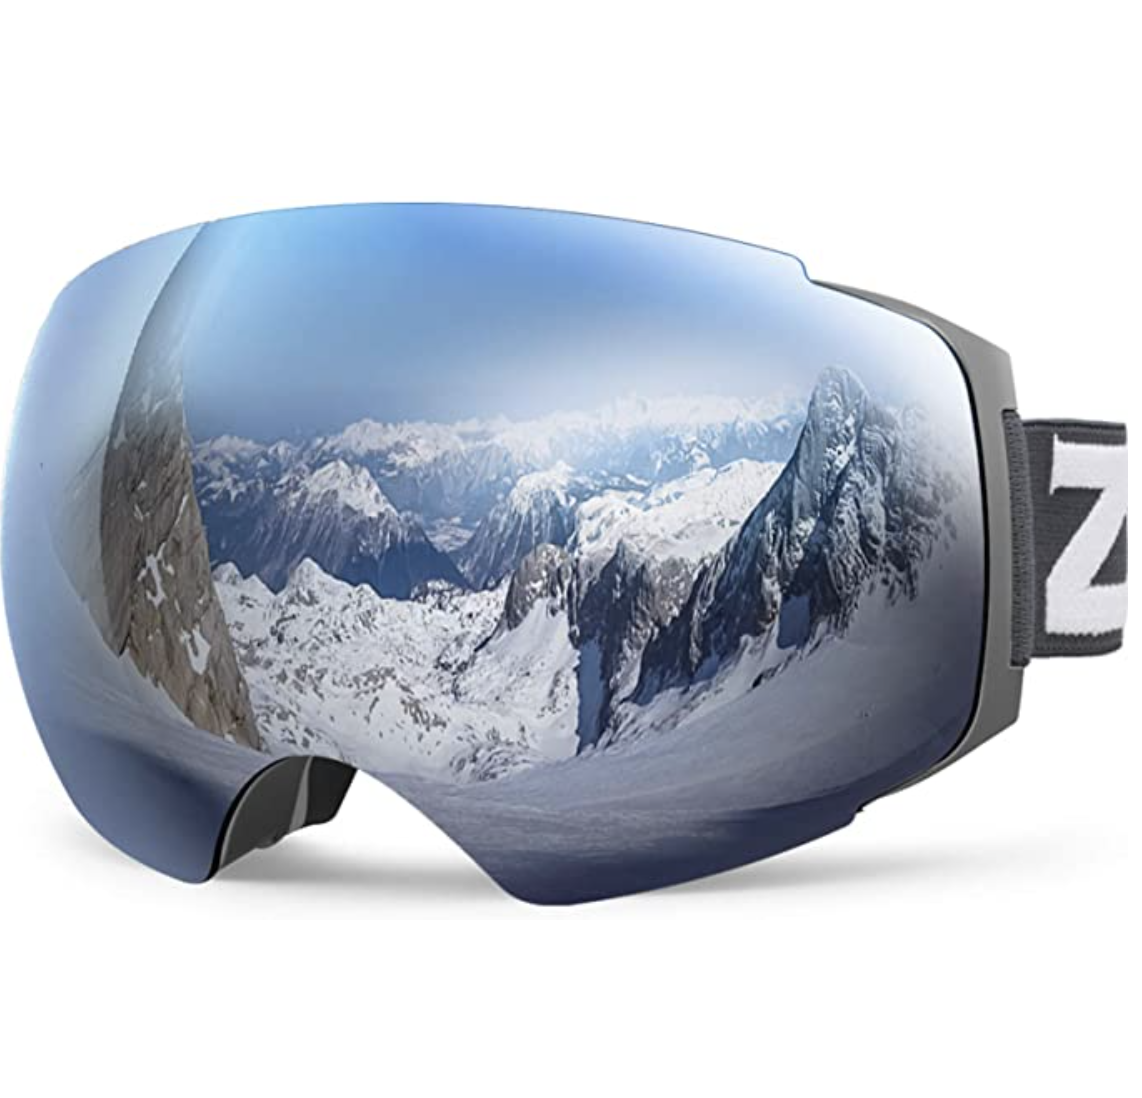 gifts-for-skiers-goggles